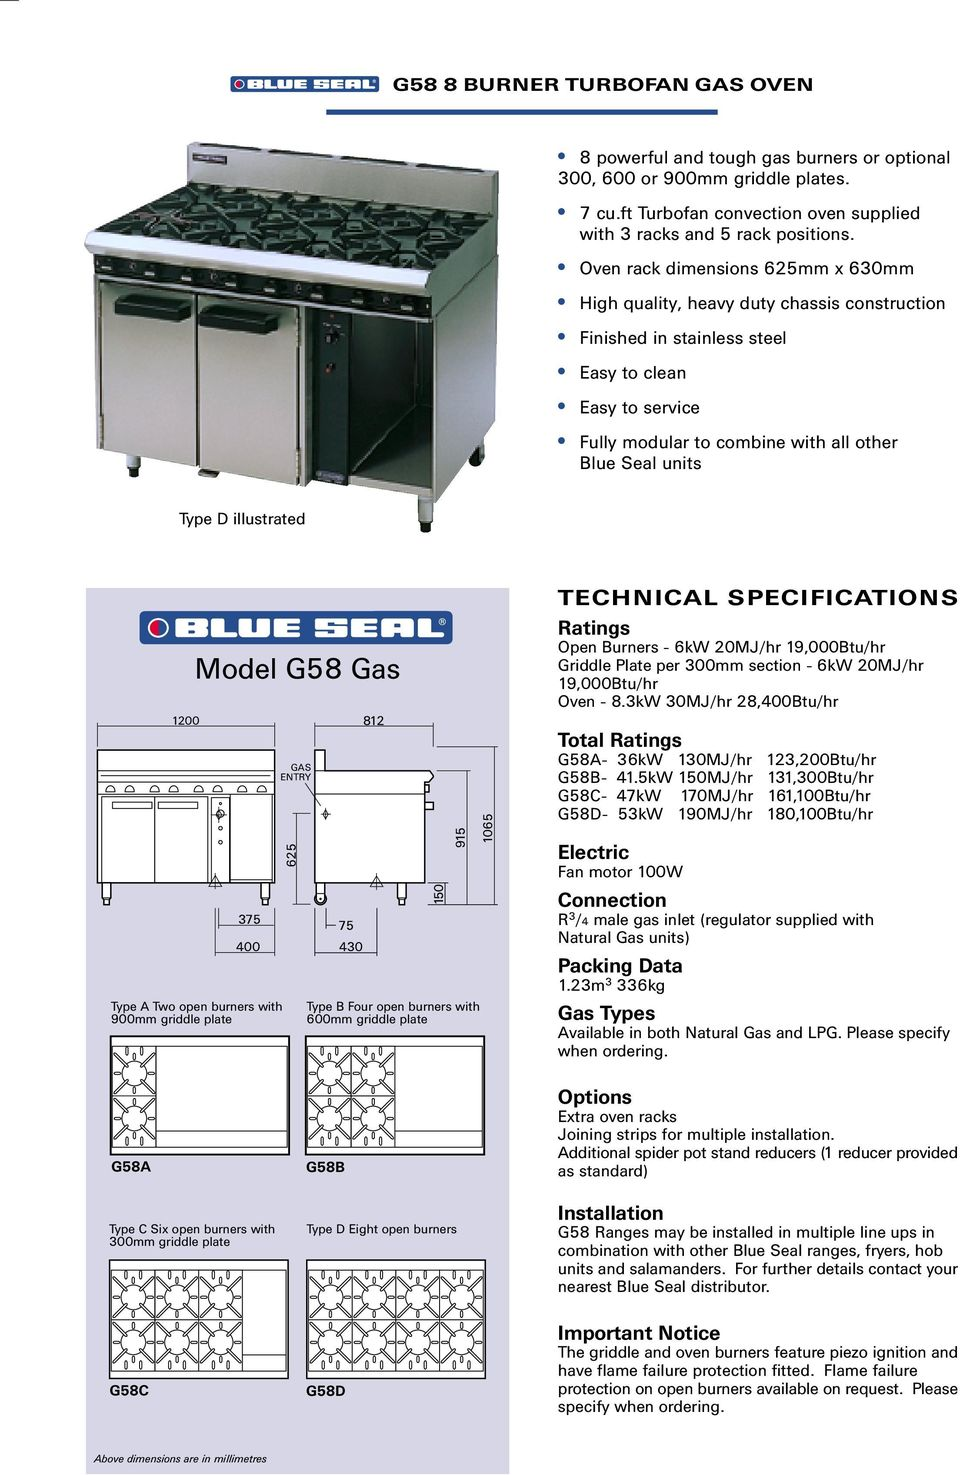 GAS ENTRY 625 430 150 Type B Four open burners with 600mm 1065 Open Burners - 6kW 20MJ/hr 19,000Btu/hr Griddle Plate per 300mm section - 6kW 20MJ/hr 19,000Btu/hr Oven - 8.